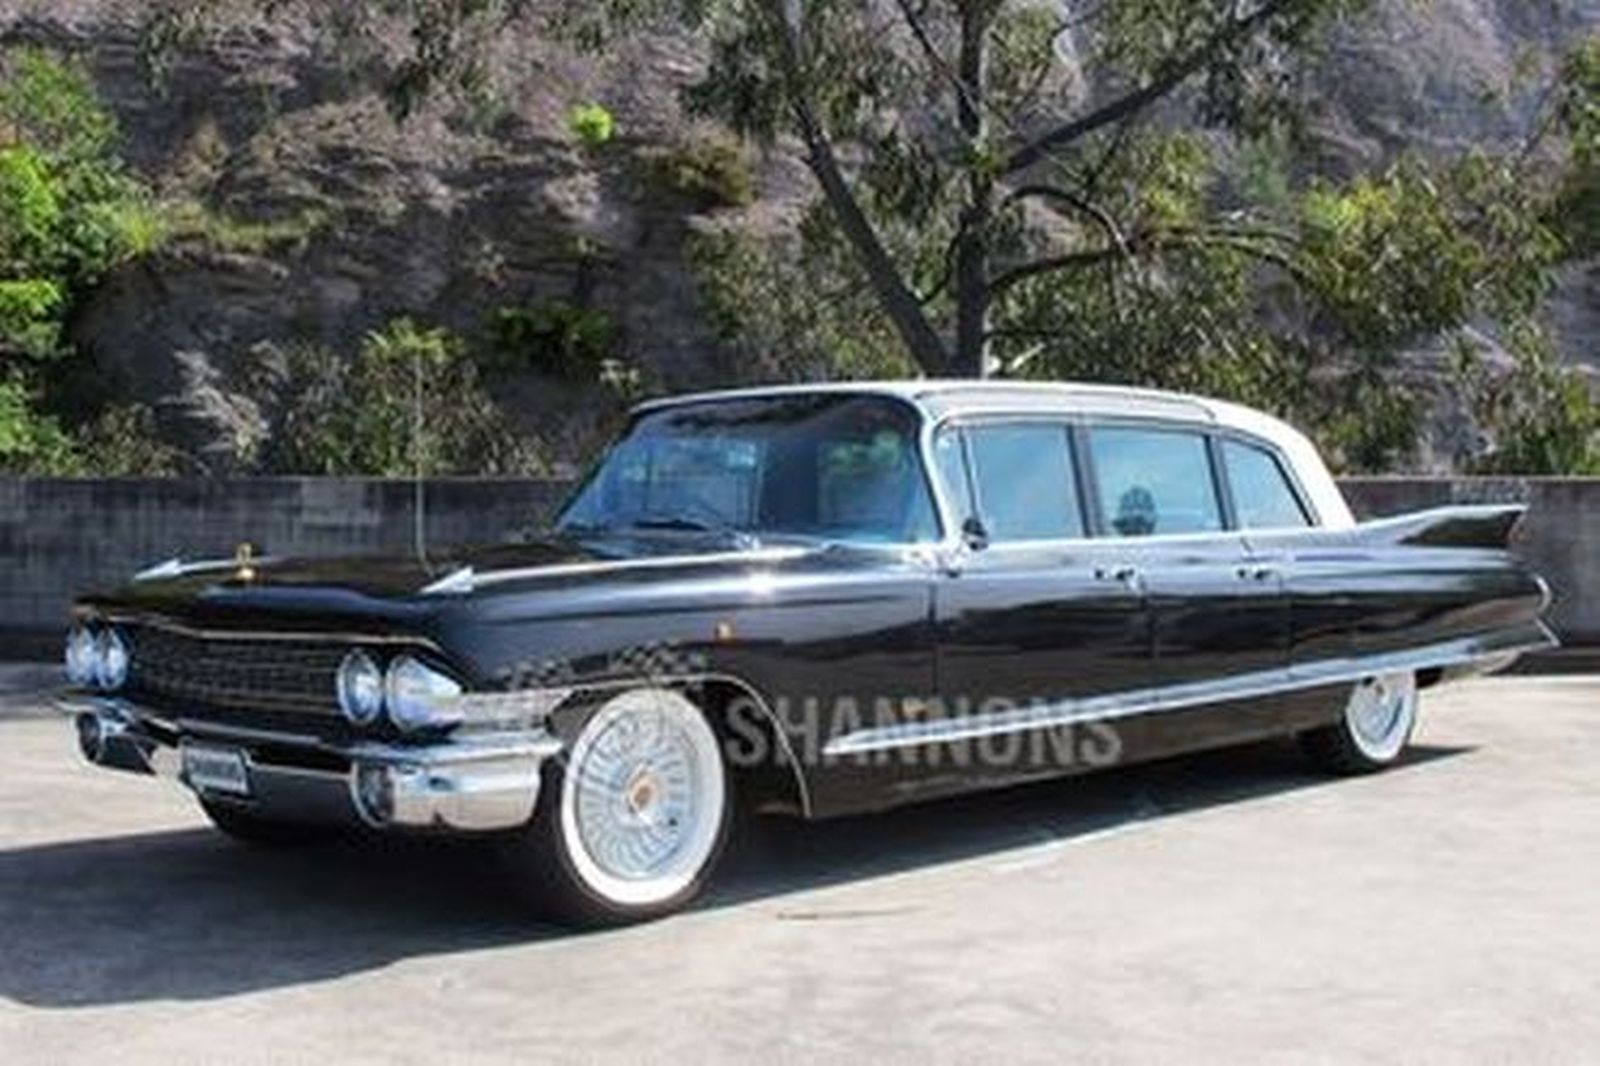 Sold: Cadillac Fleetwood Series 75 Limousine (RHD) Auctions - Lot 17